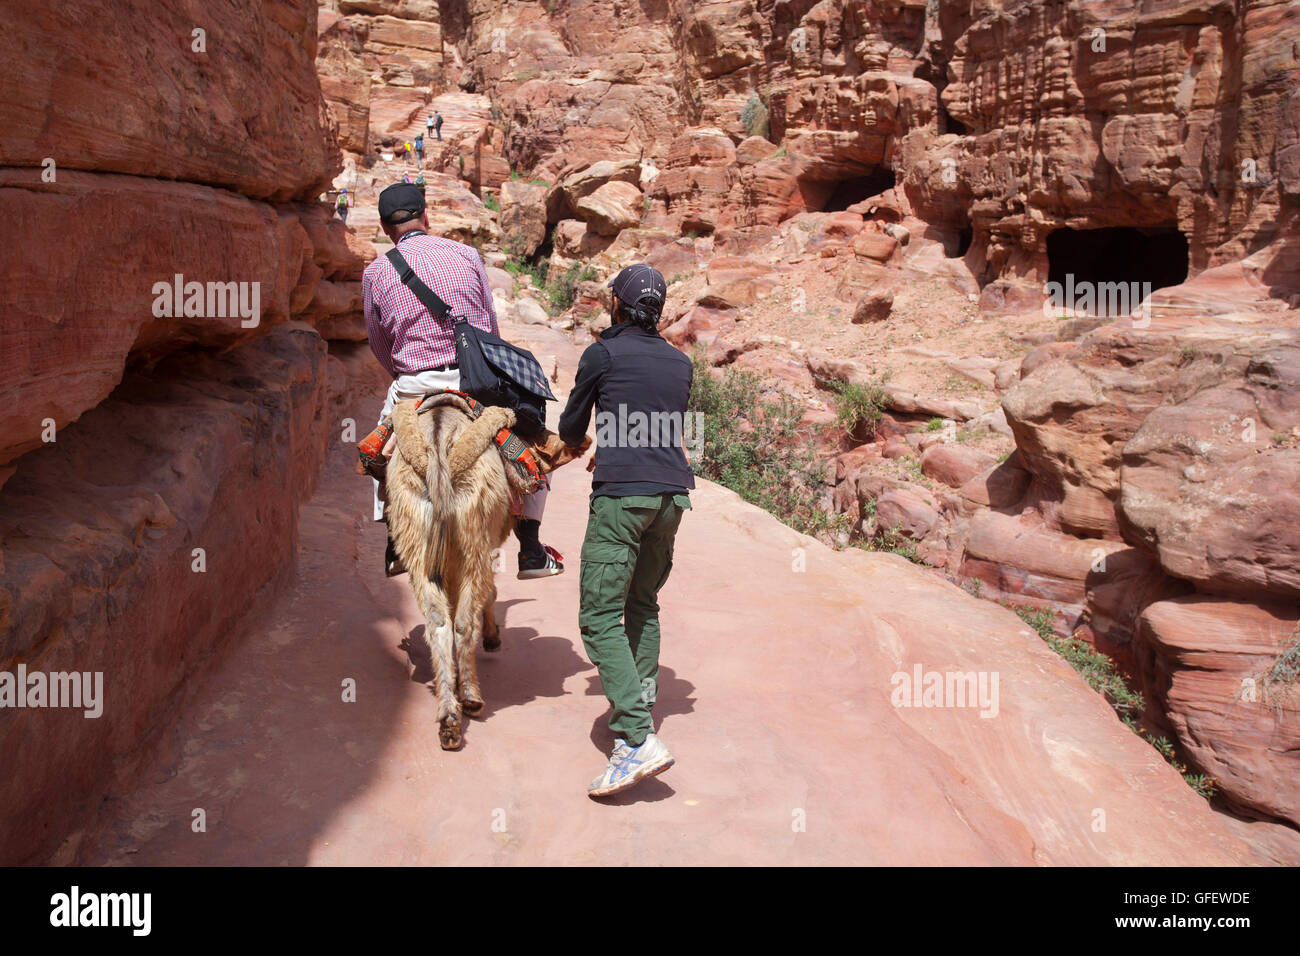 Tourist on a donkey inside the lost city of Petra. Jordan. - Stock Image